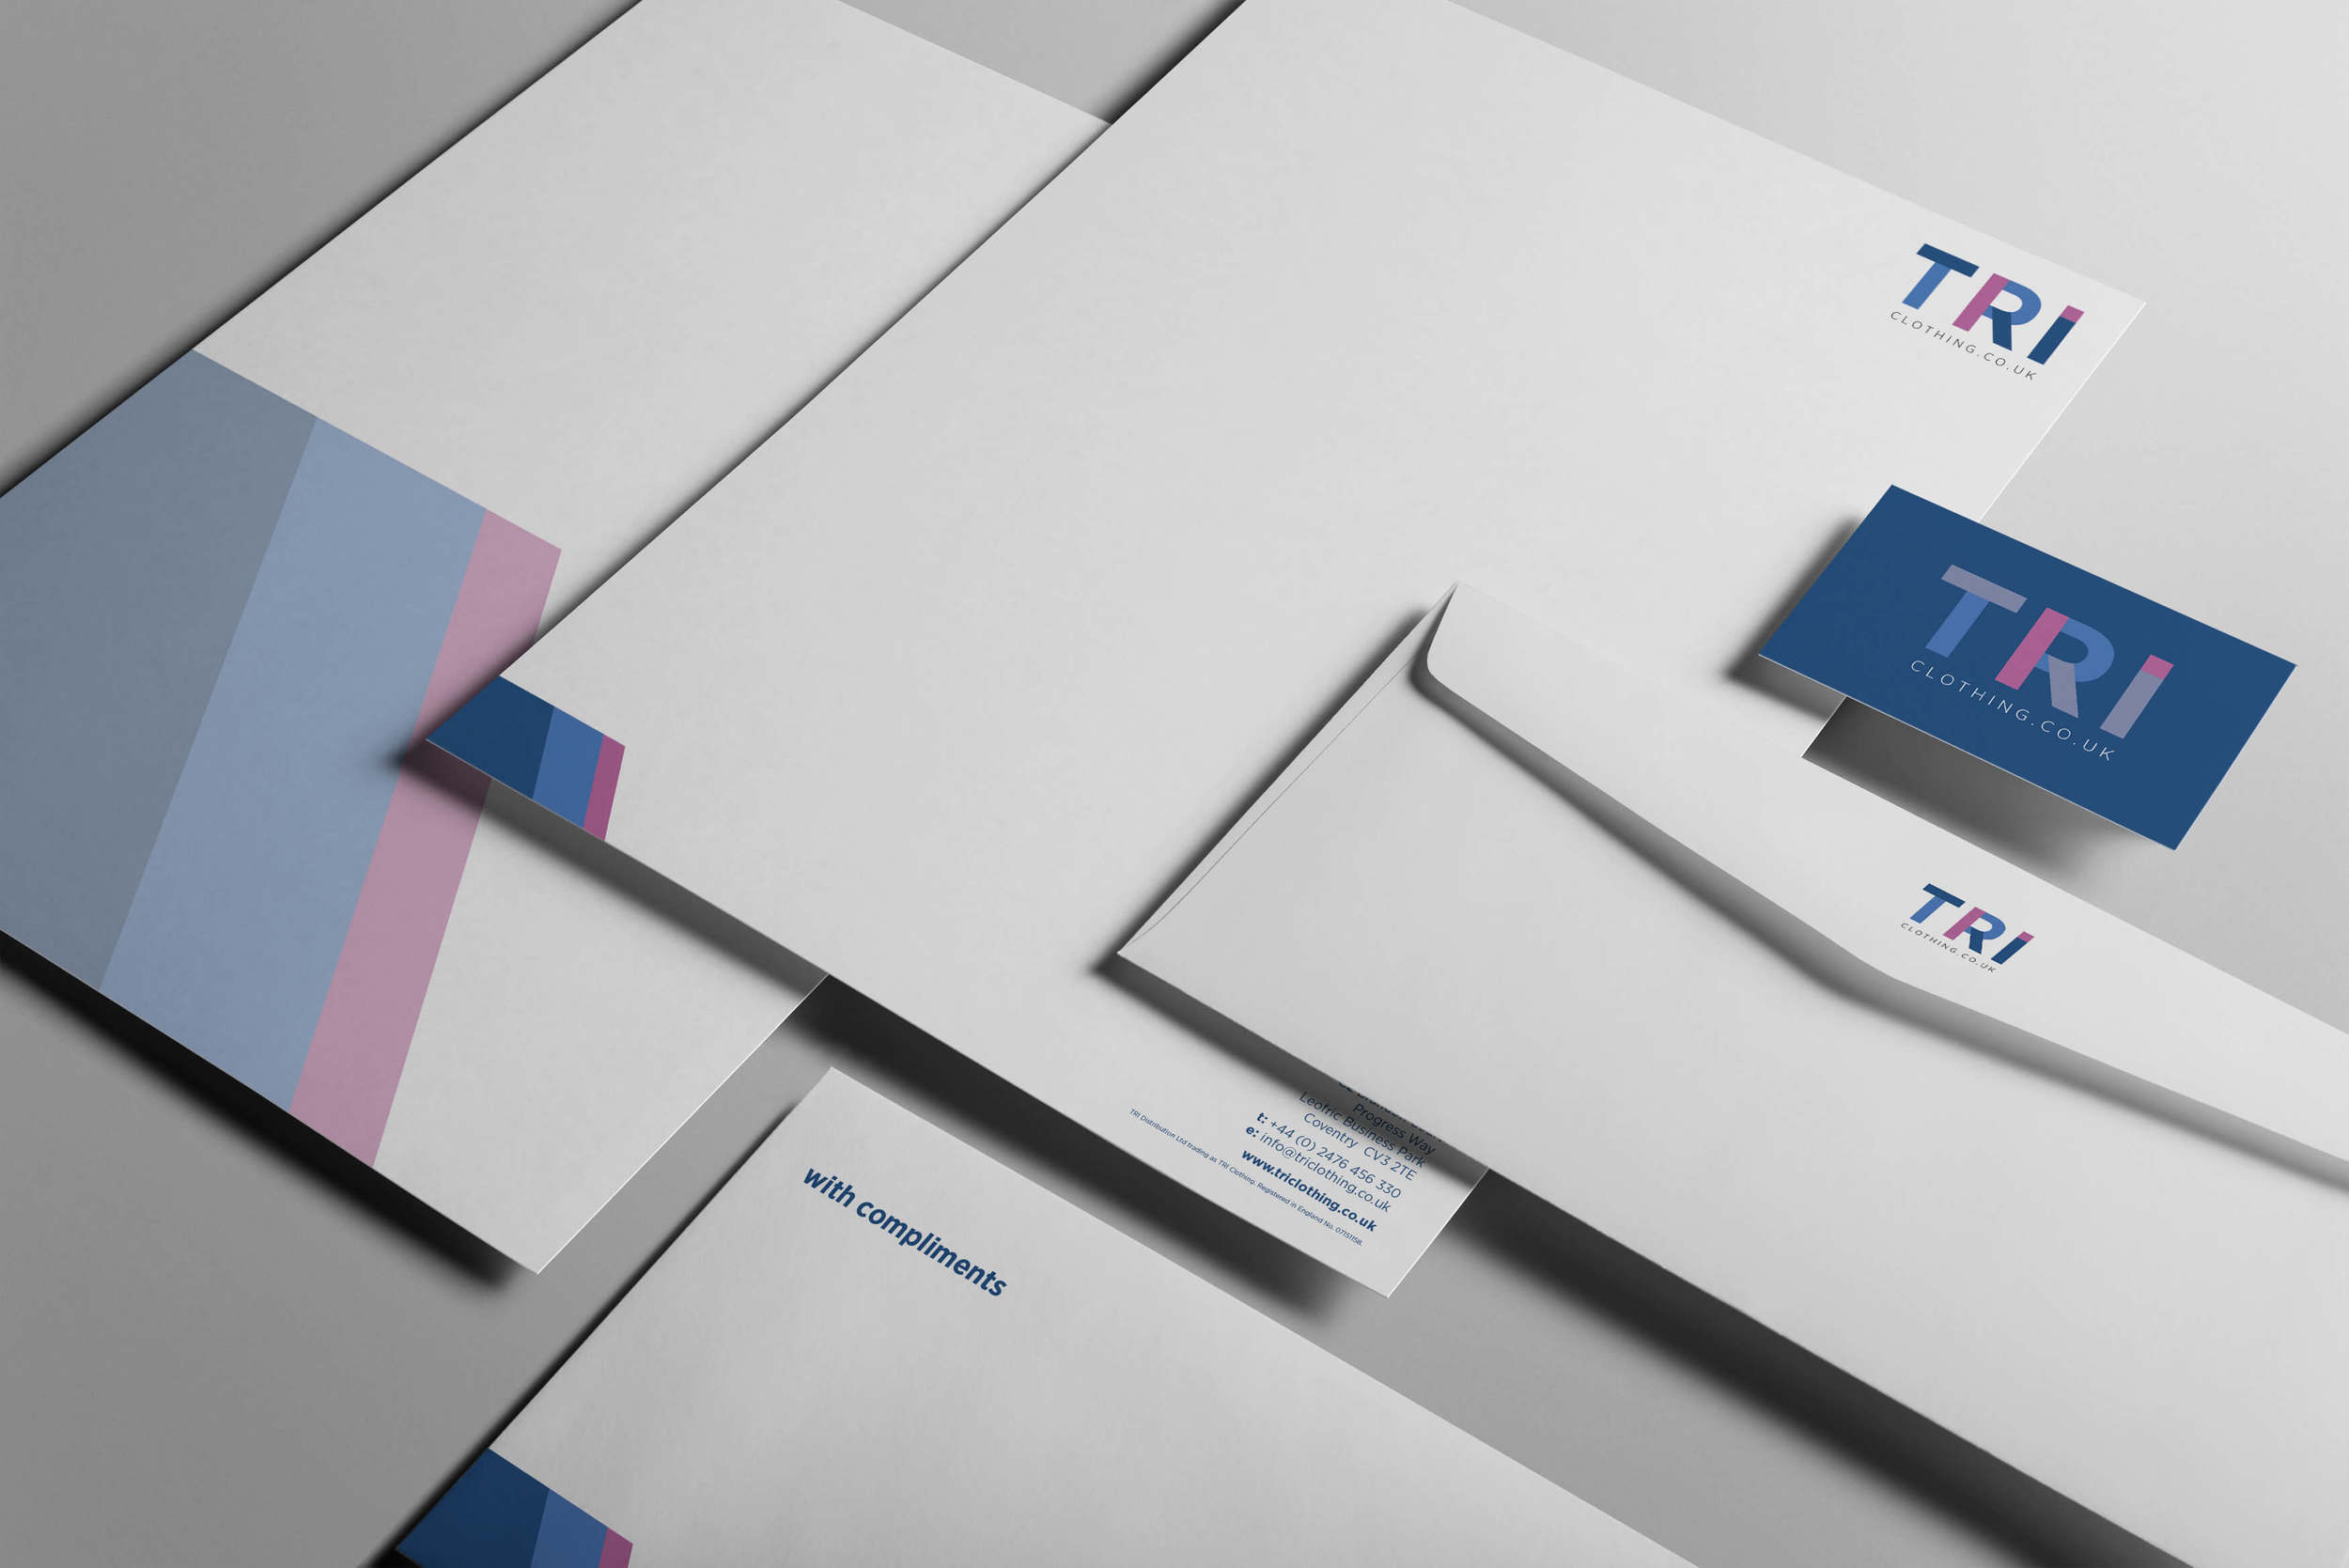 Letterhead, business cards and compliments slips designed by Create Onsight for TRI Clothing, Coventry